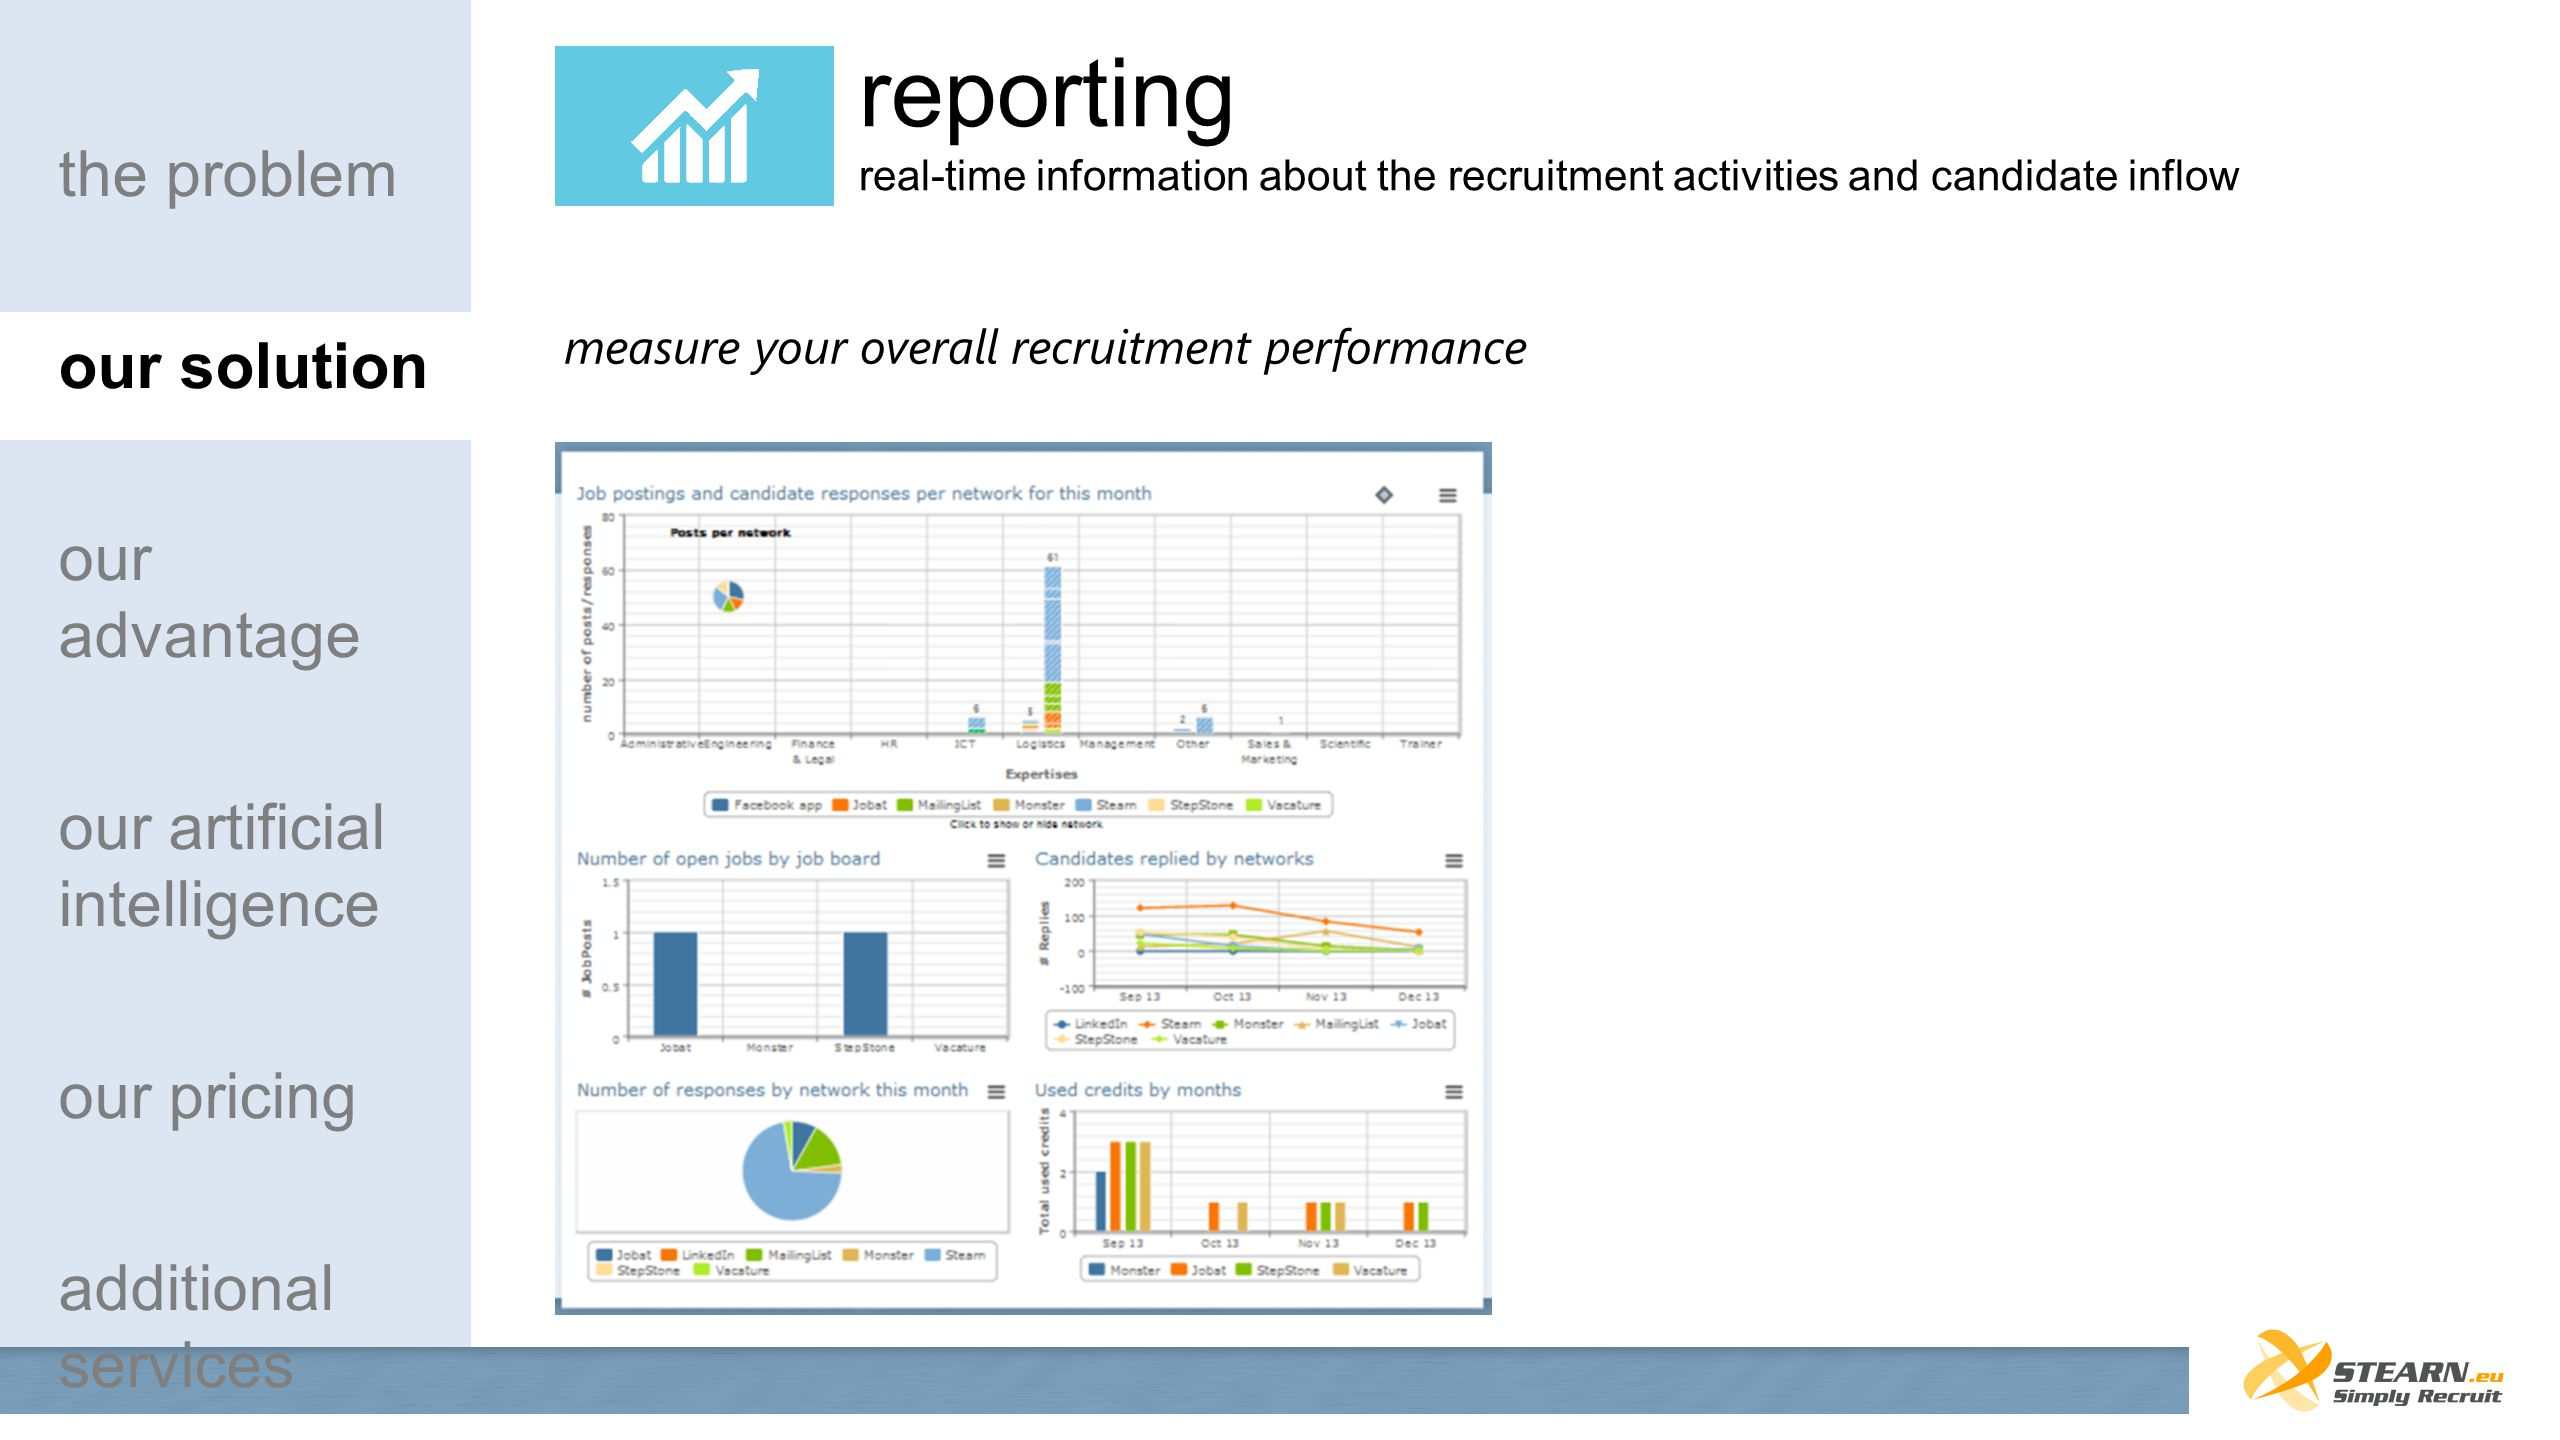 reporting real-time information about the recruitment activities and candidate inflow measure your overall recruitment performance the problem our sol